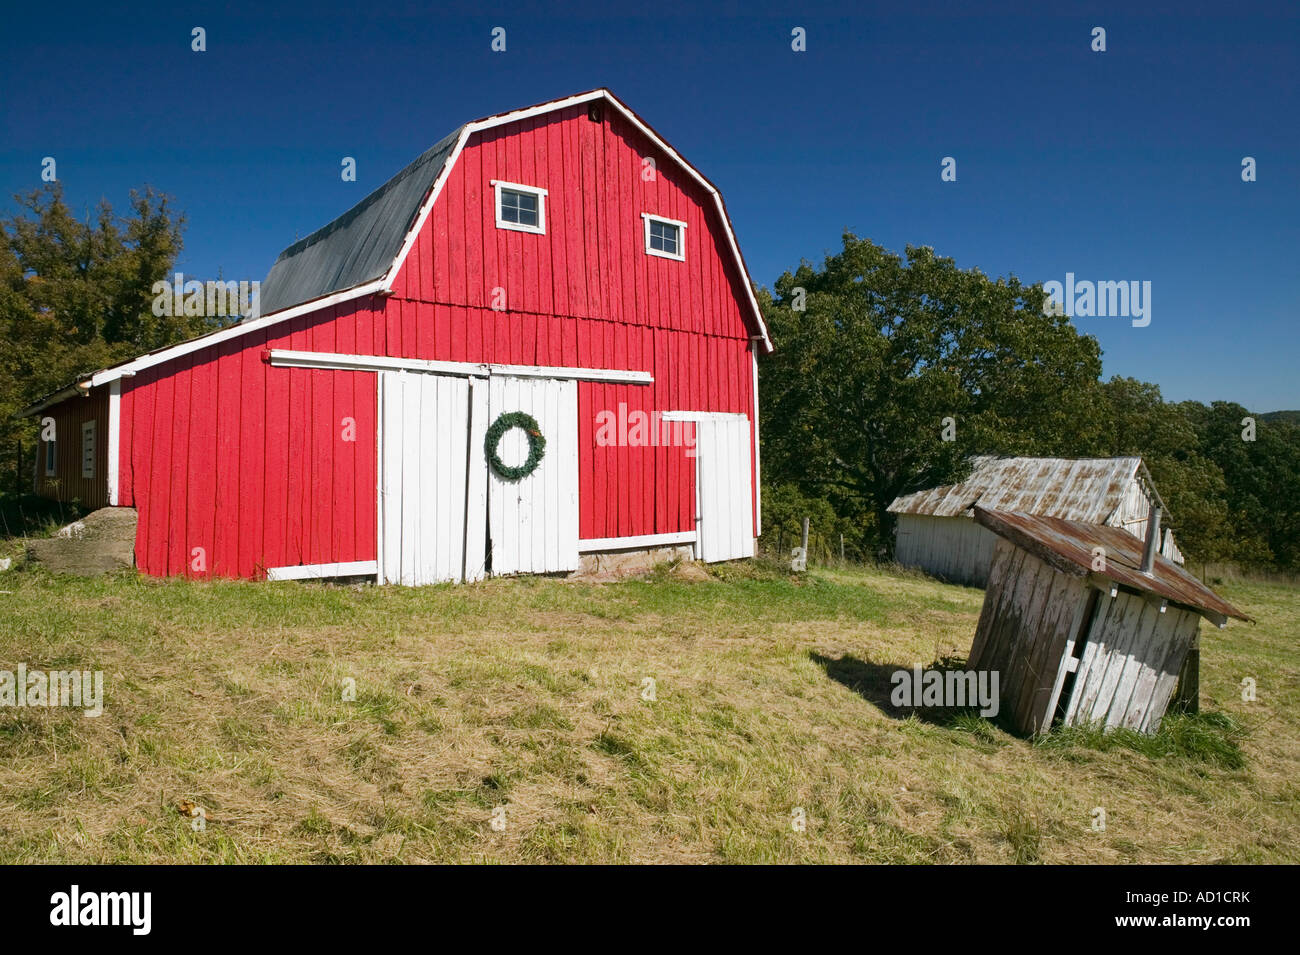 Red Barn Filled Bones Red Barn Filled Dog Bones Chicken. Open Source Splunk Alternative. Attorneys In Fredericksburg Va. Mortgage Rates Colorado Locksmith San Jose Ca. What Phone Can I Upgrade To Solar For Condos. Expat Health Insurance Thailand. Direct Consolidation Student Loans. List Of Community Colleges In Missouri. Crystal Meth Street Names Smart Home Solution